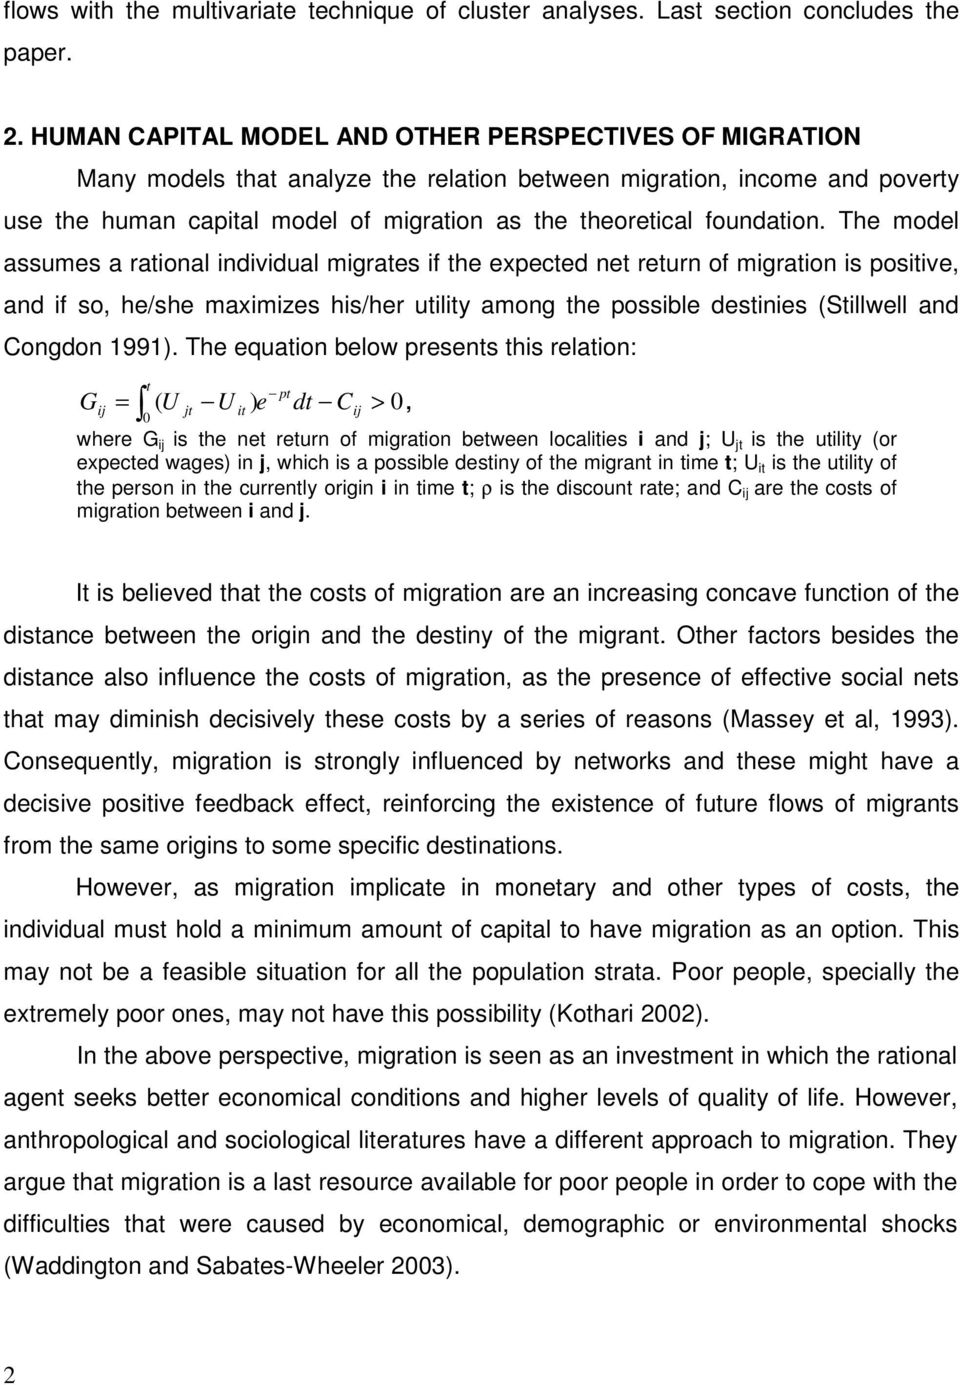 The model assumes a rational individual migrates if the expected net return of migration is positive, and if so, he/she maximizes his/her utility among the possible destinies (Stillwell and Congdon